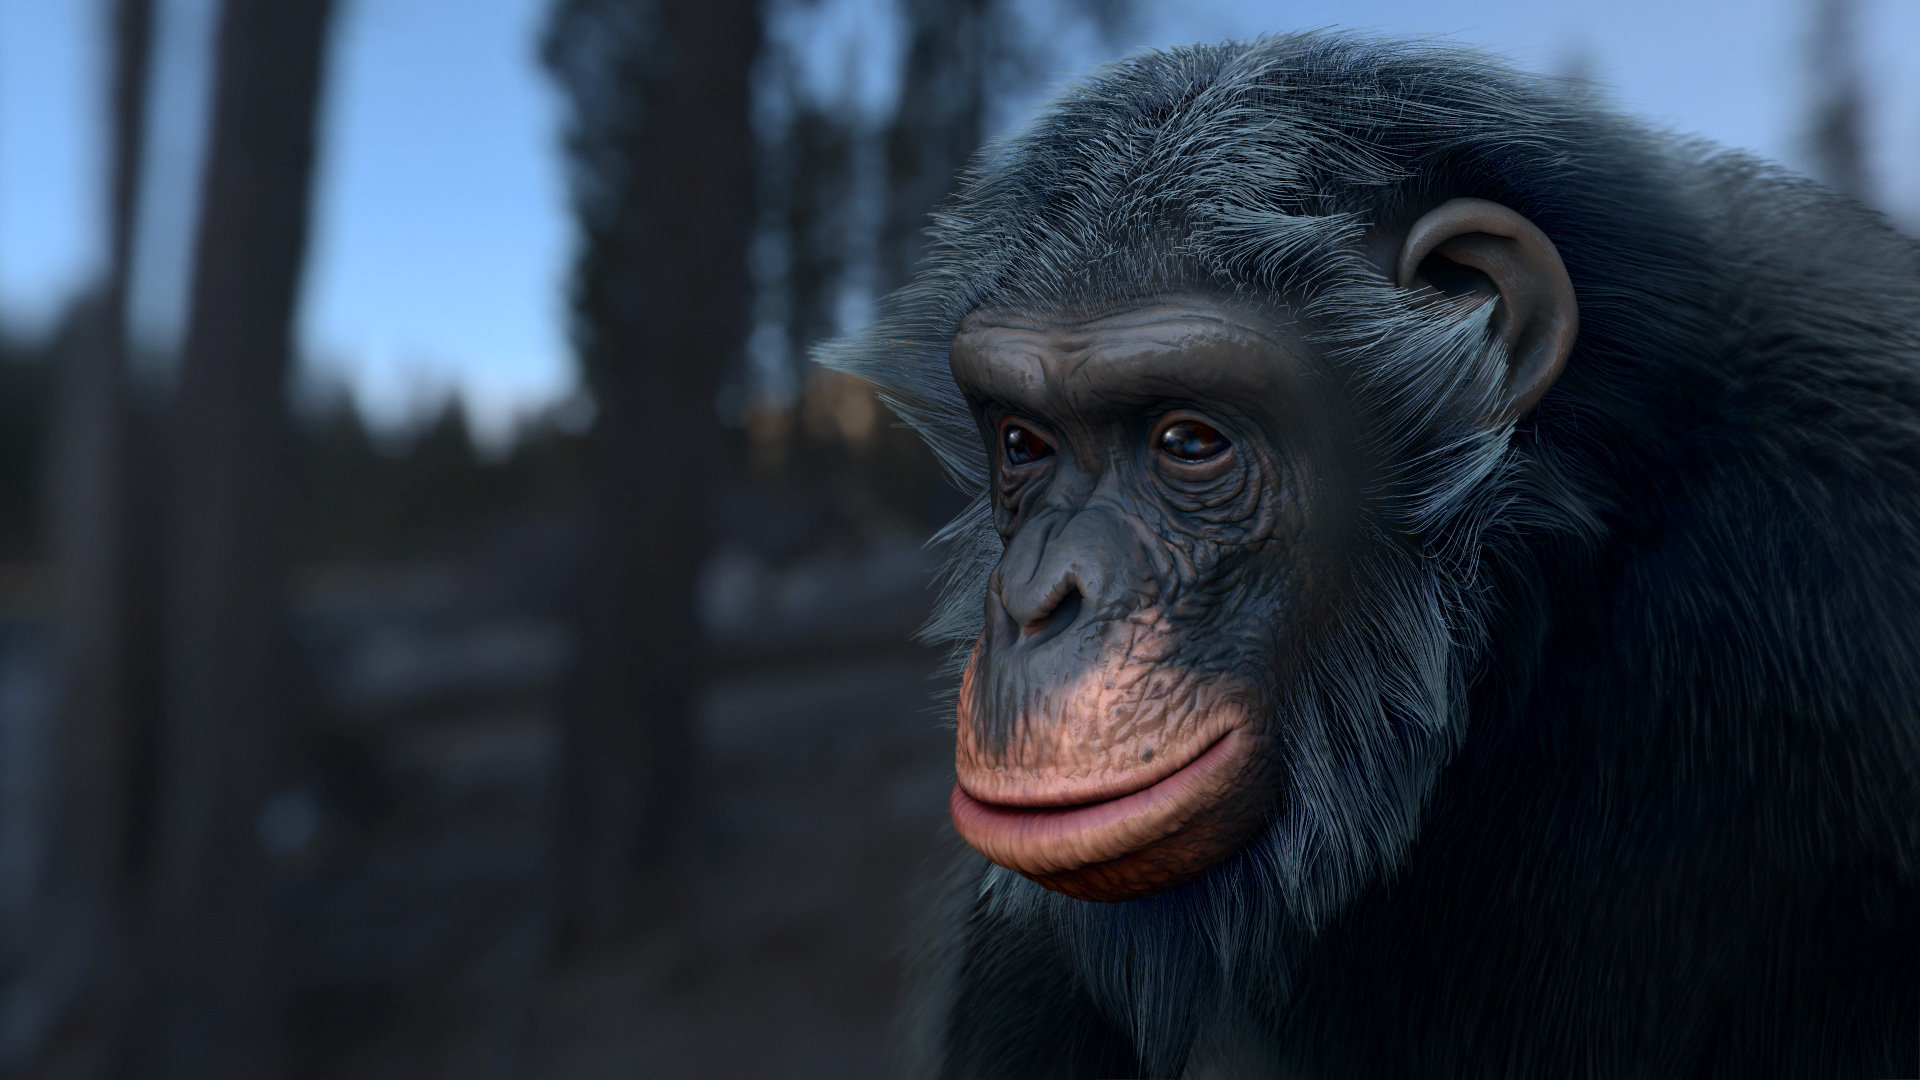 Oleg memukhin monkey head render